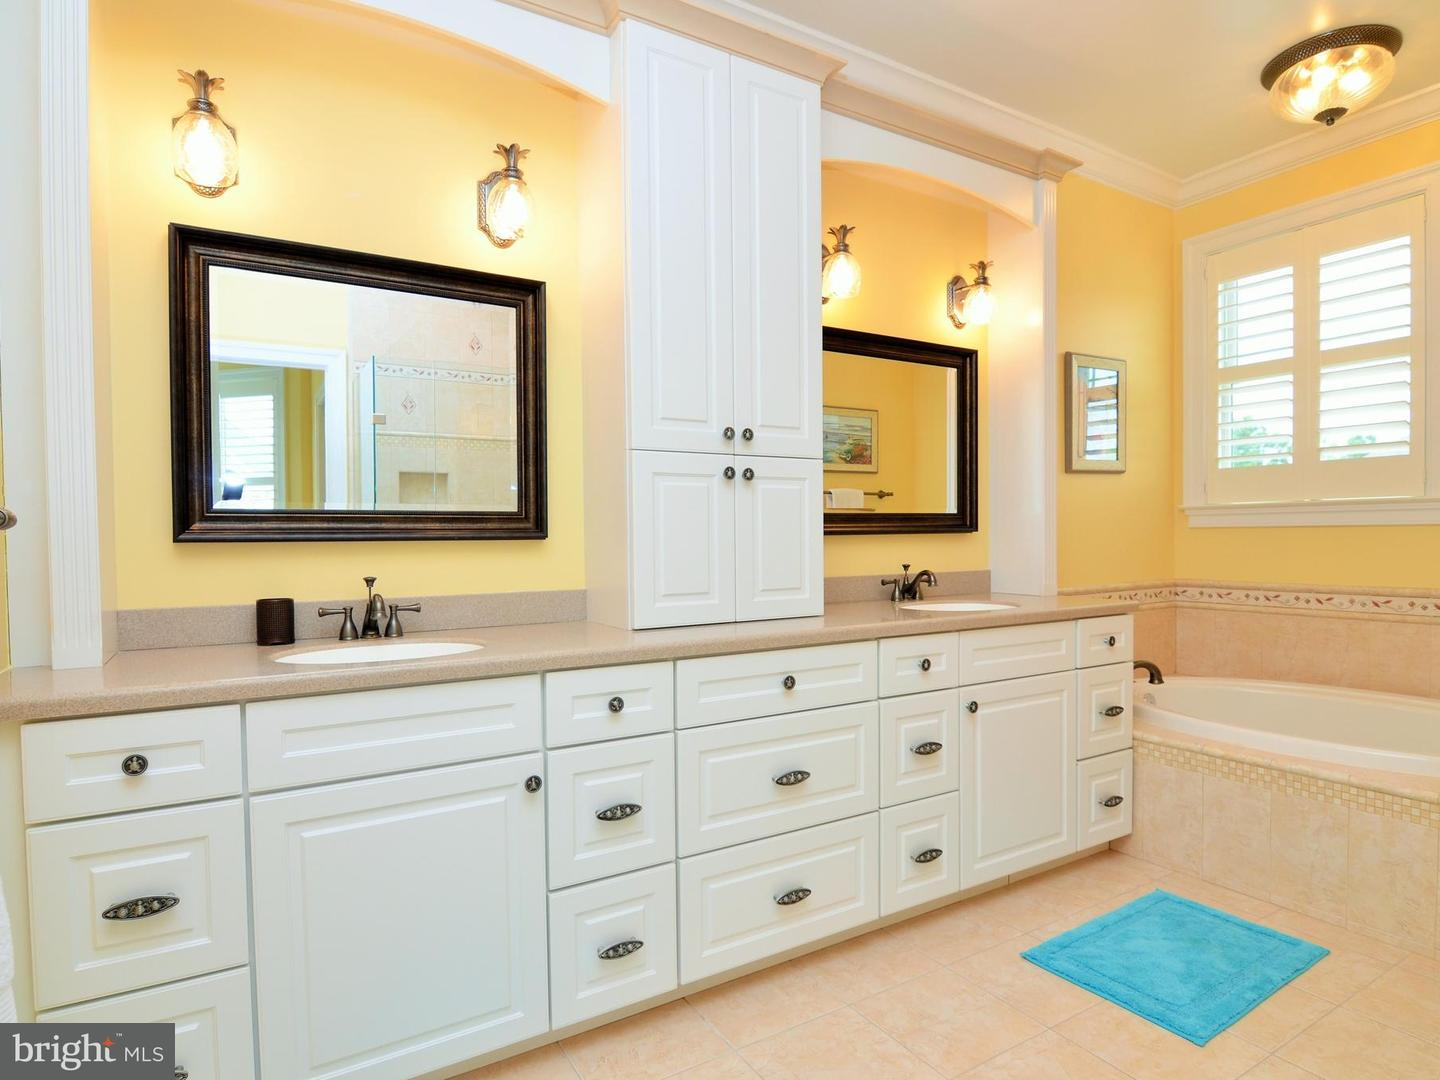 1002293530-300500807559-2018-09-25-15-08-25 31 Hall Ave | Rehoboth Beach, De Real Estate For Sale | MLS# 1002293530  - Suzanne Macnab